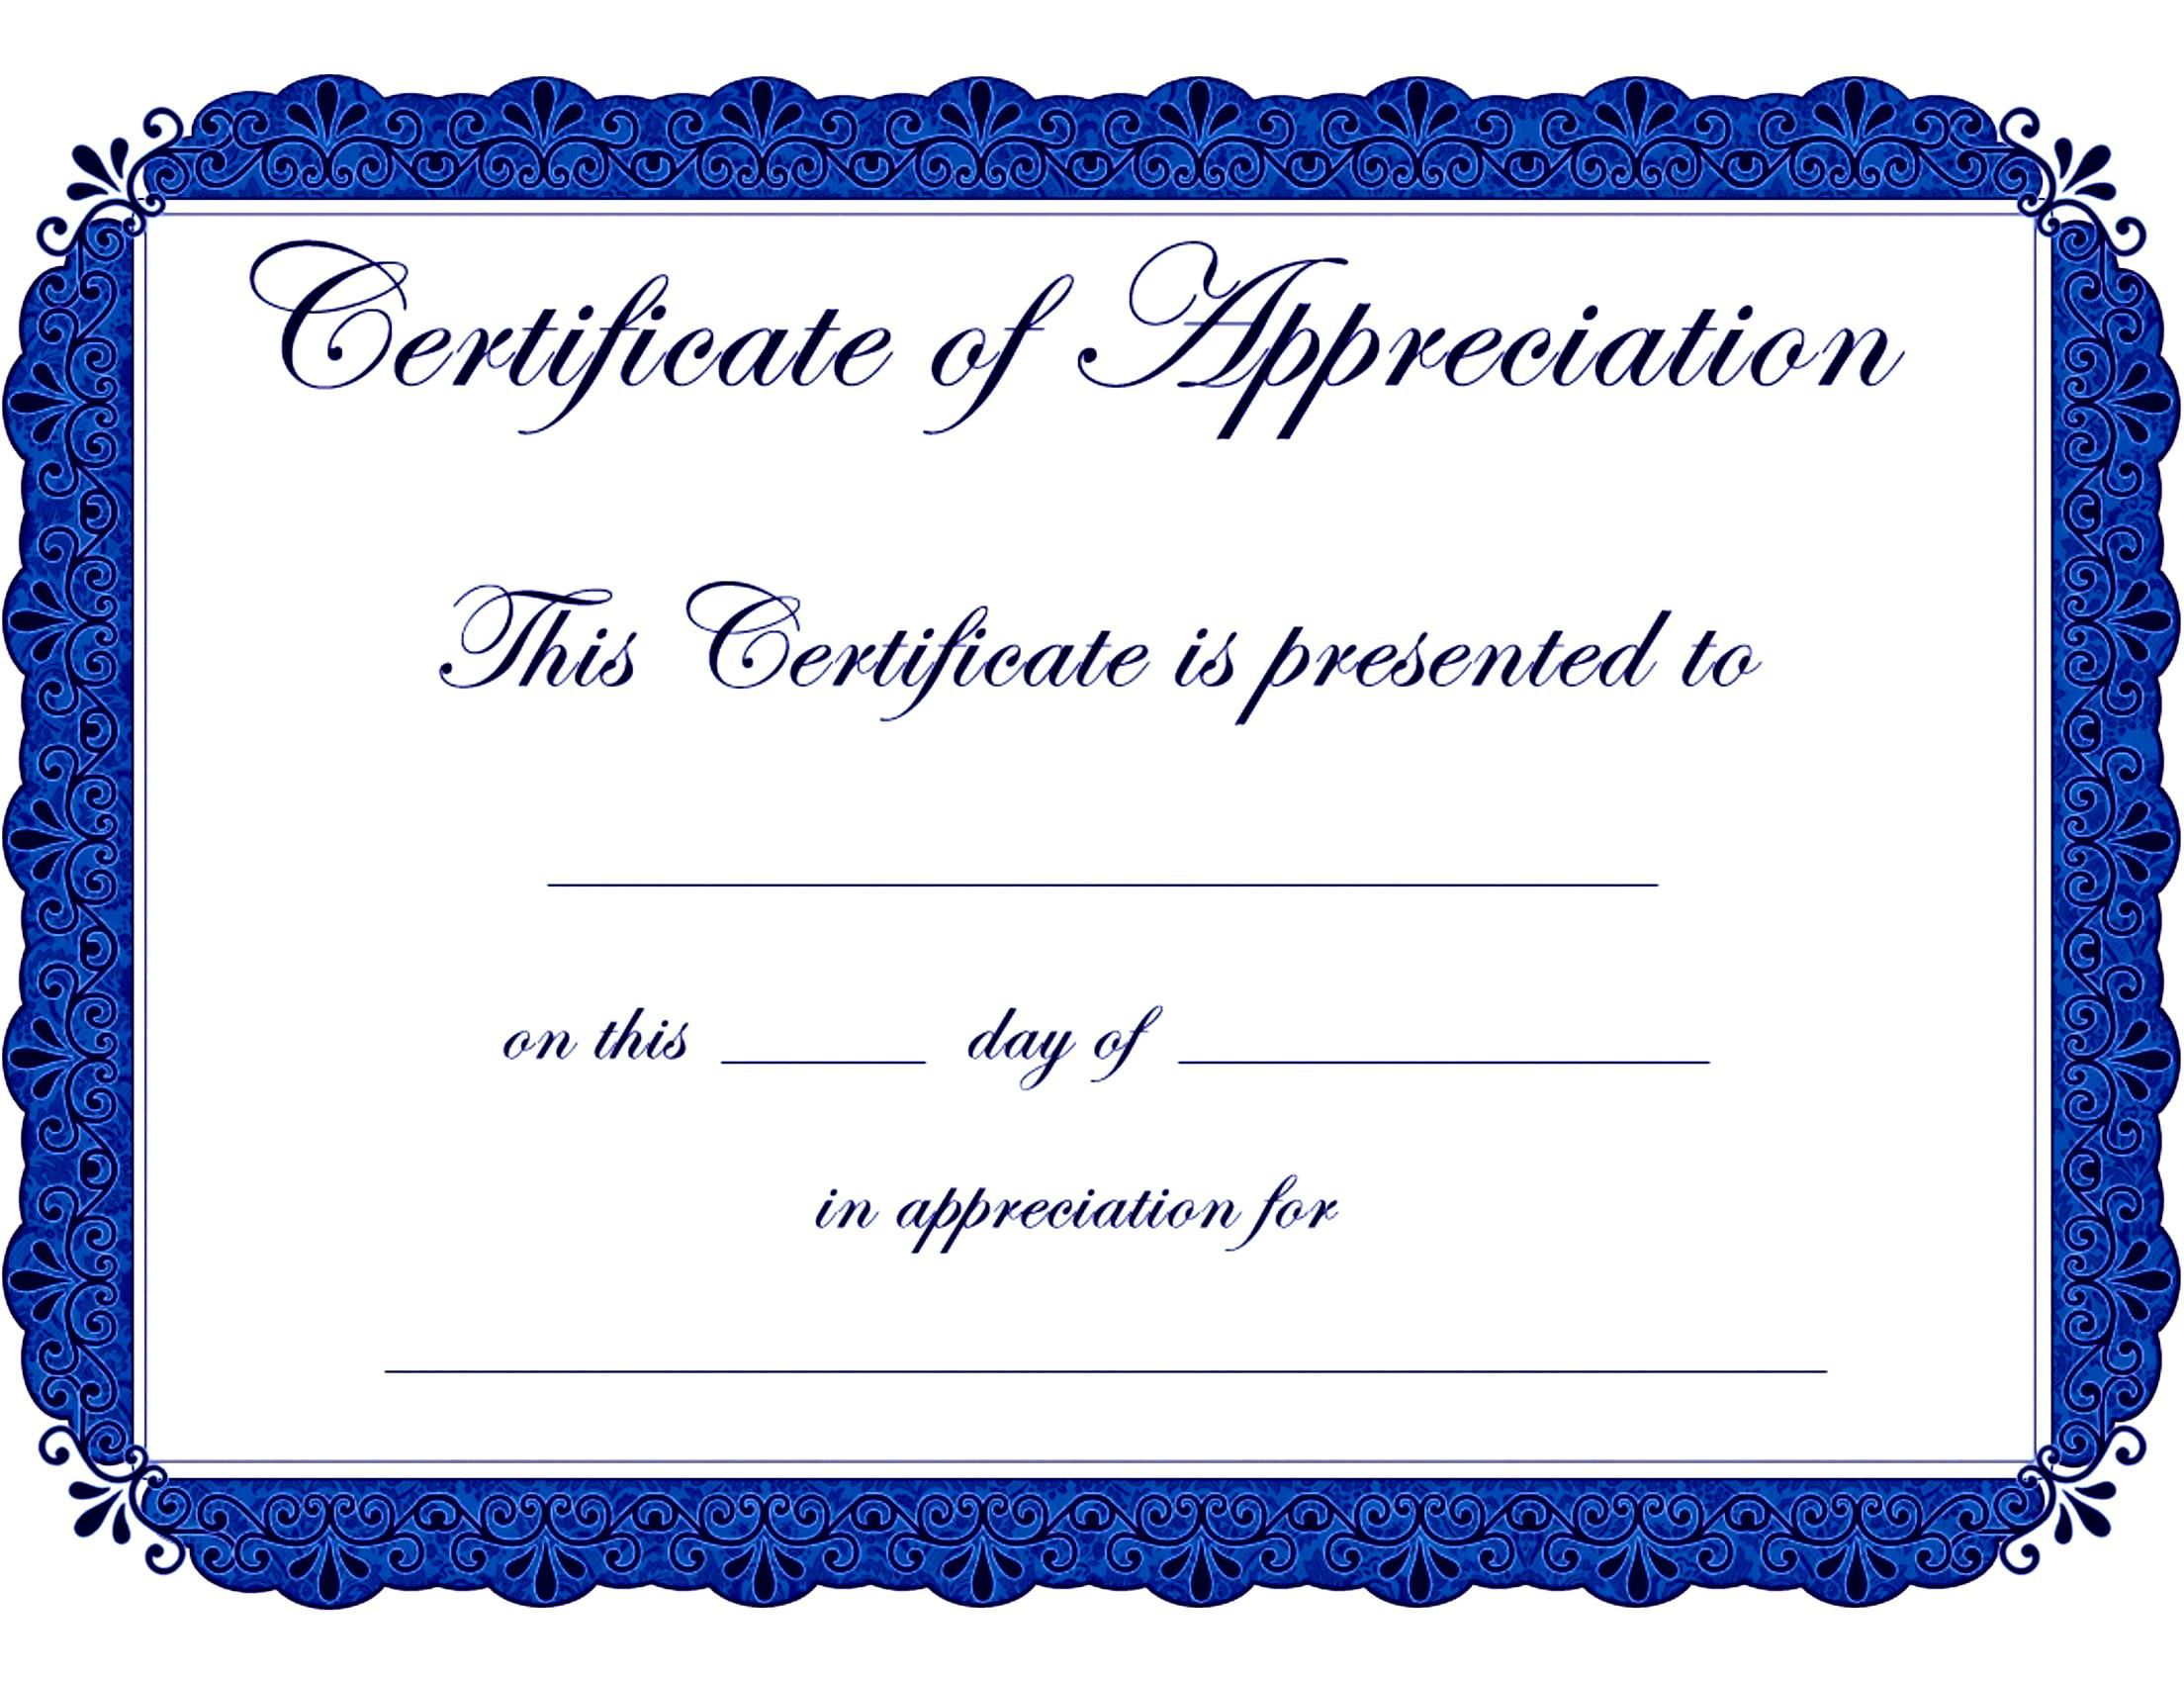 Appealing award template word for certificate of appreciation with appealing award template word for certificate of appreciation with blue color theme and floral motif yadclub Gallery